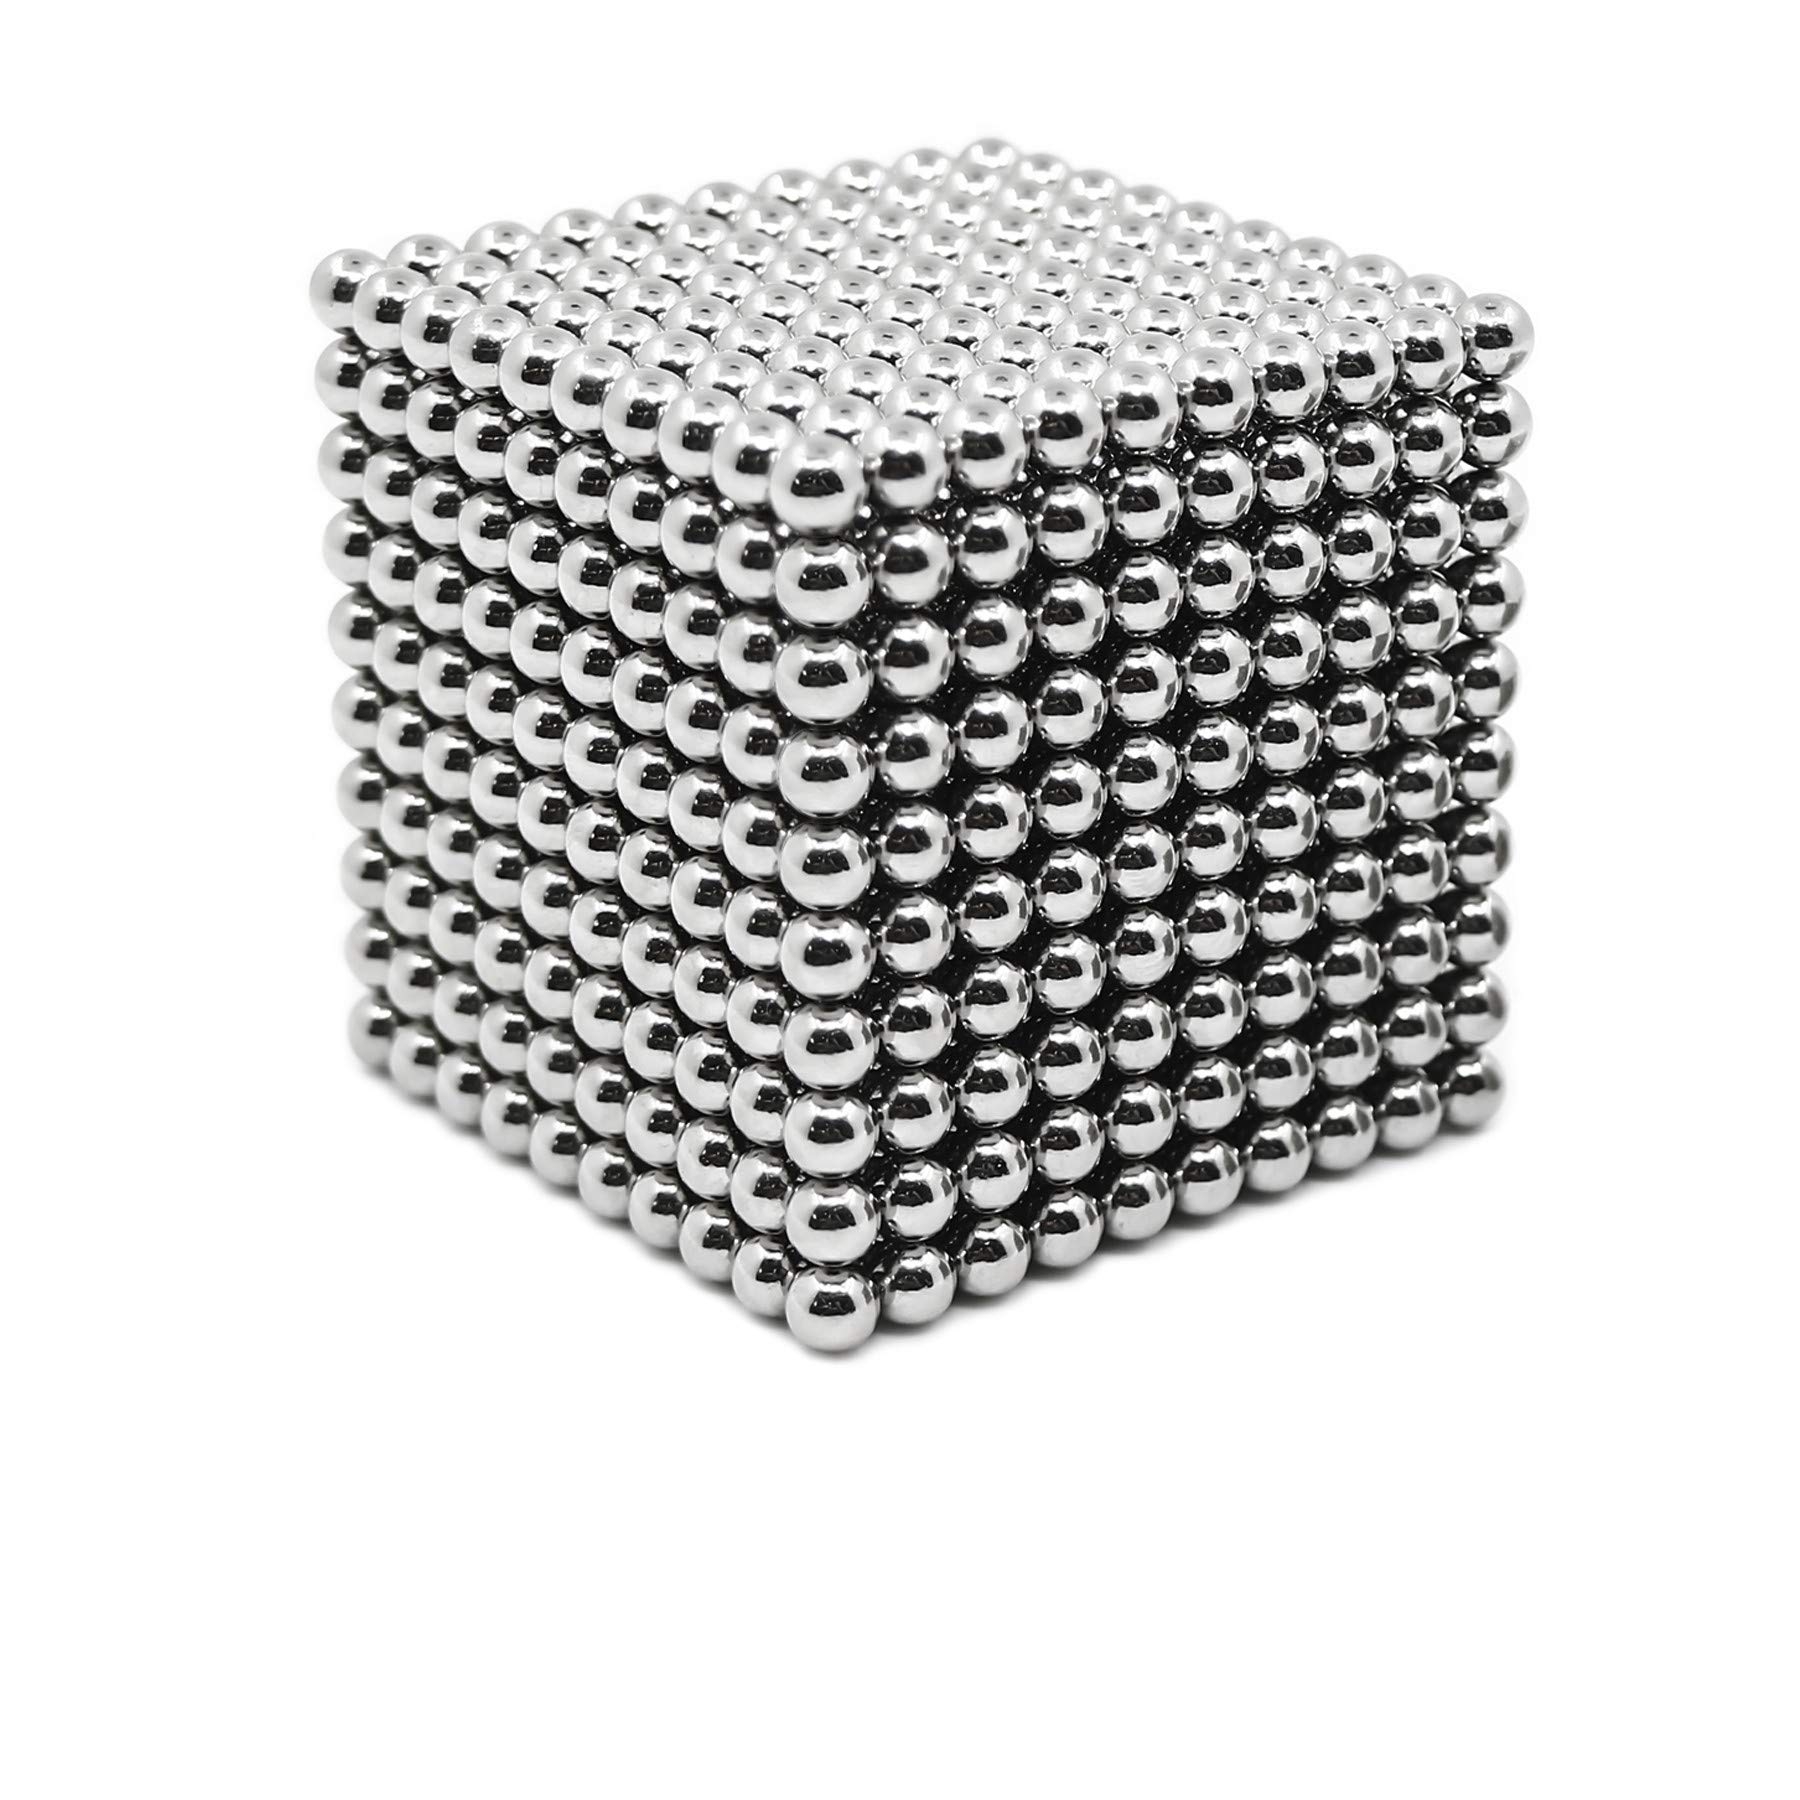 HBDeskToys 1000 Magnetic Balls,3mm Magnetic Toys,3D Magnetic Building Blocks,Stress Relief Adults,Toys for Office (Shiny Silver) by HBDeskToys (Image #1)